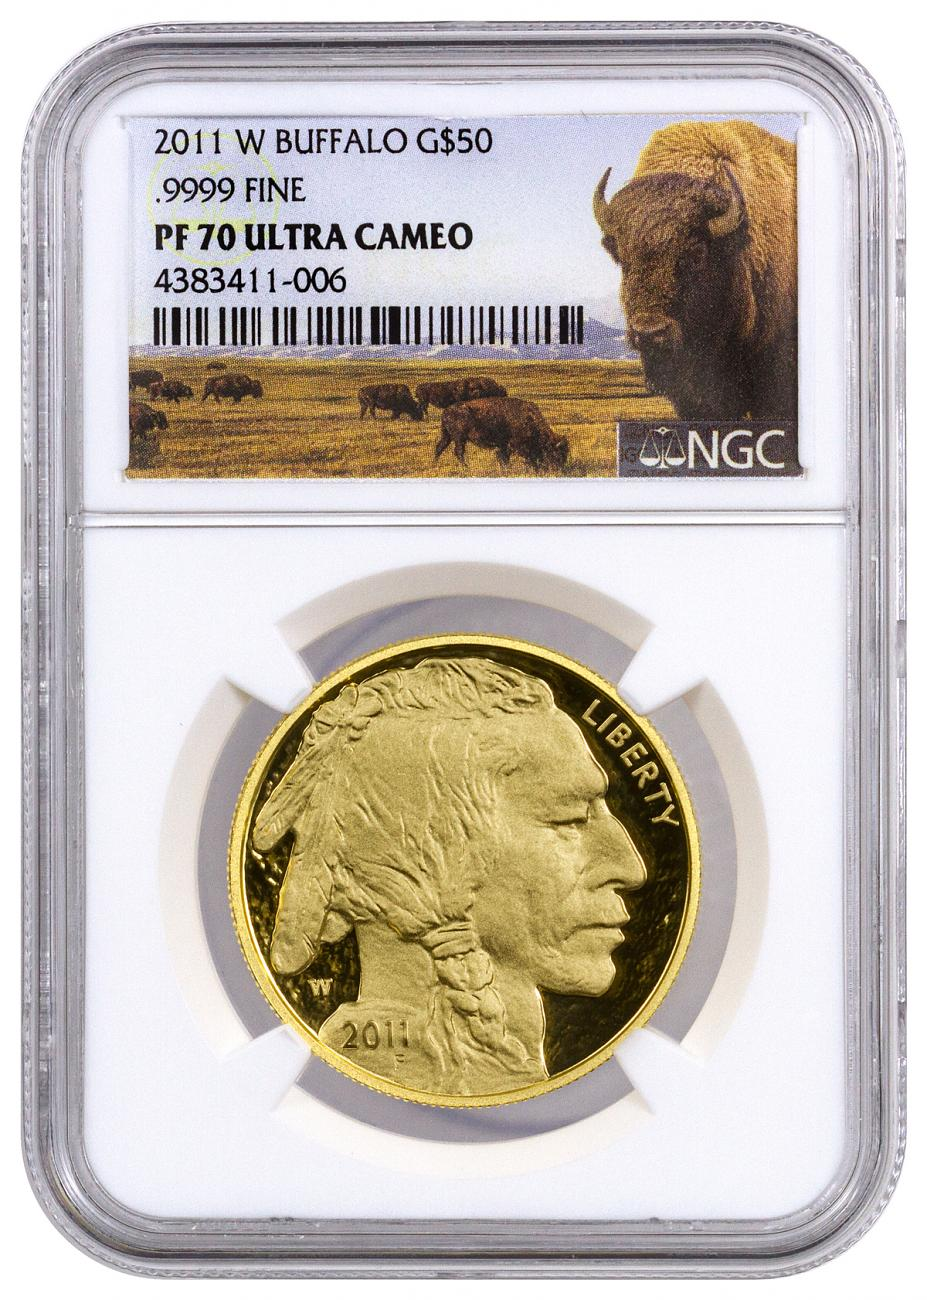 2011-W 1 oz Gold Buffalo Proof $50 NGC PF70 UC (Buffalo Label)